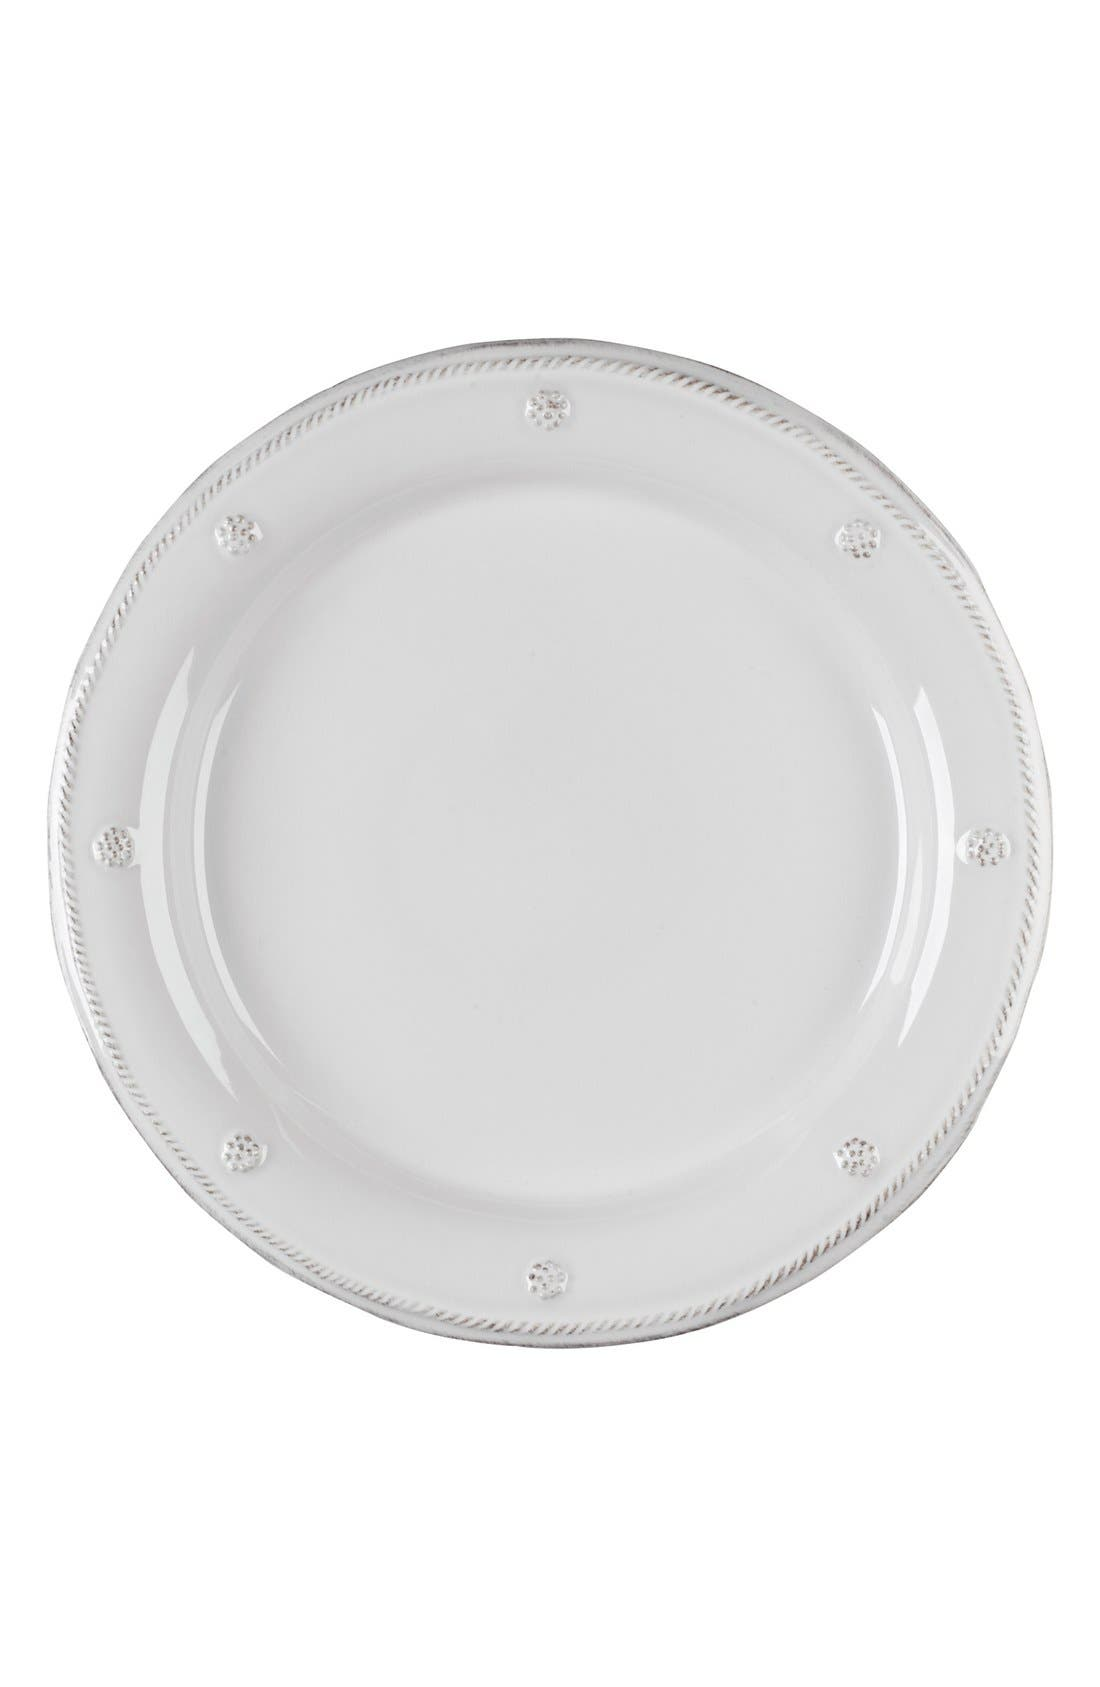 'Berry and Thread' Dinner Plate,                         Main,                         color, WHITEWASH